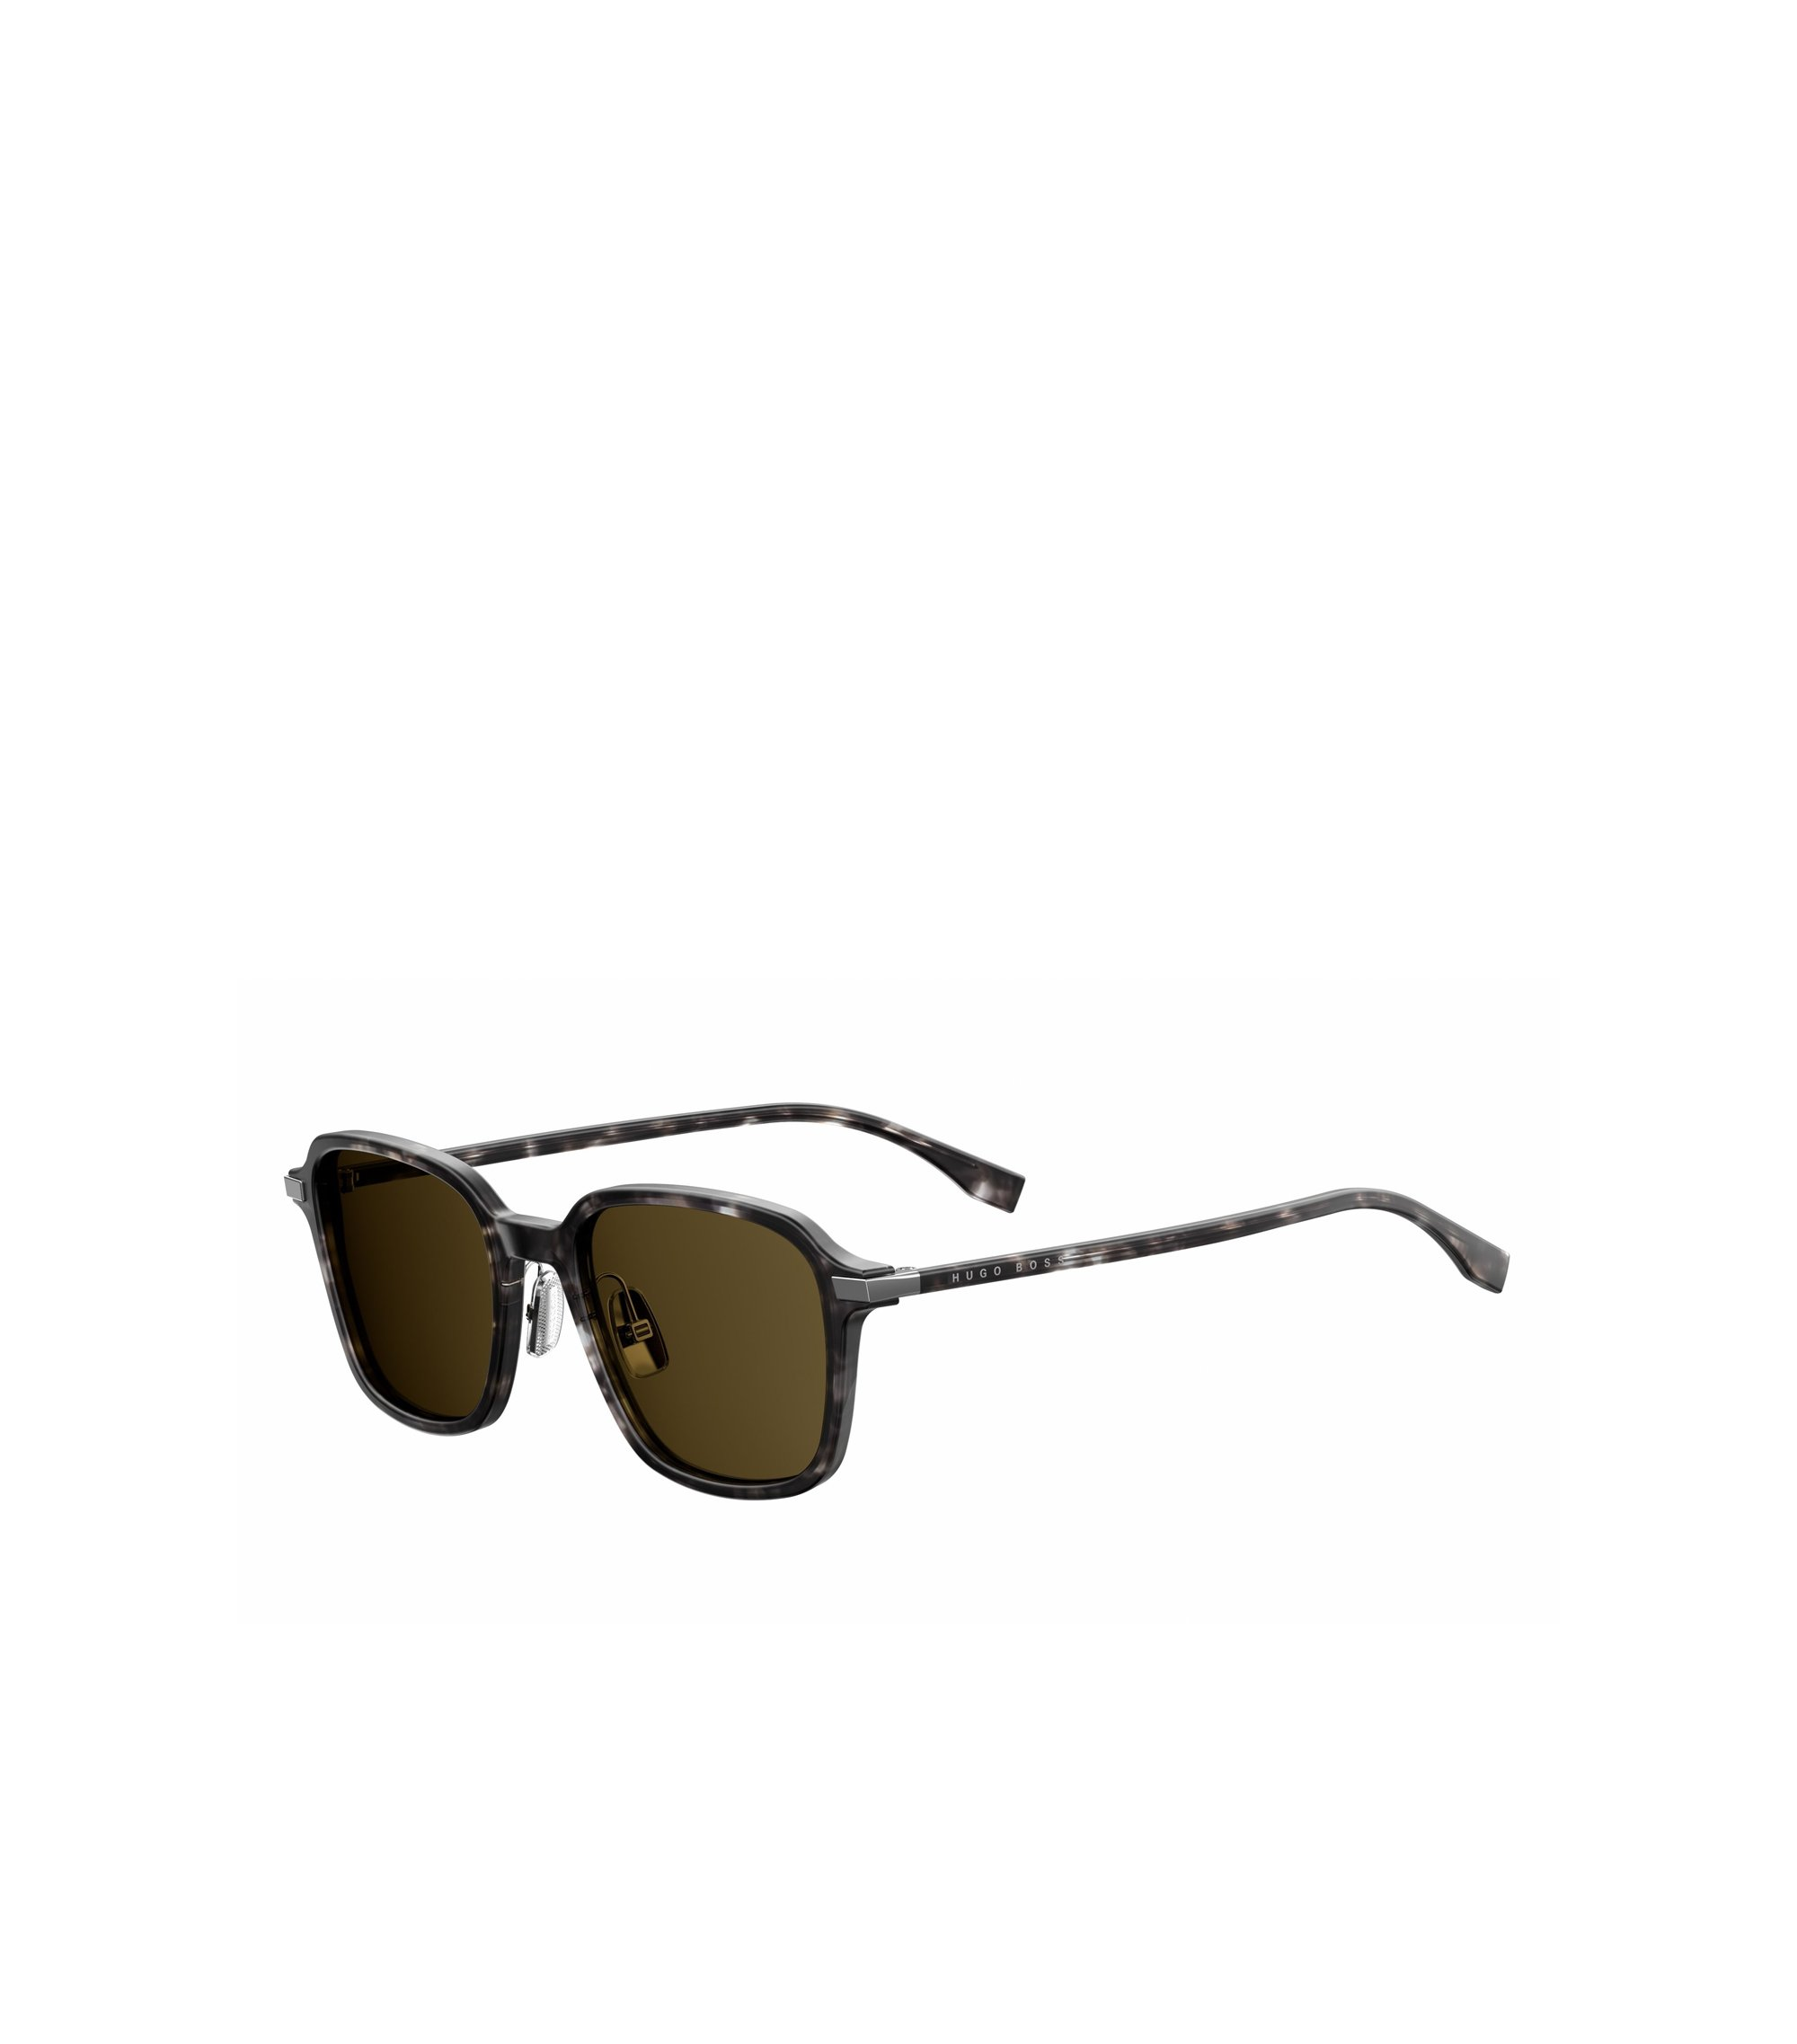 Brown Lens Havana Square Sunglasses | BOSS 0909S, Assorted-Pre-Pack